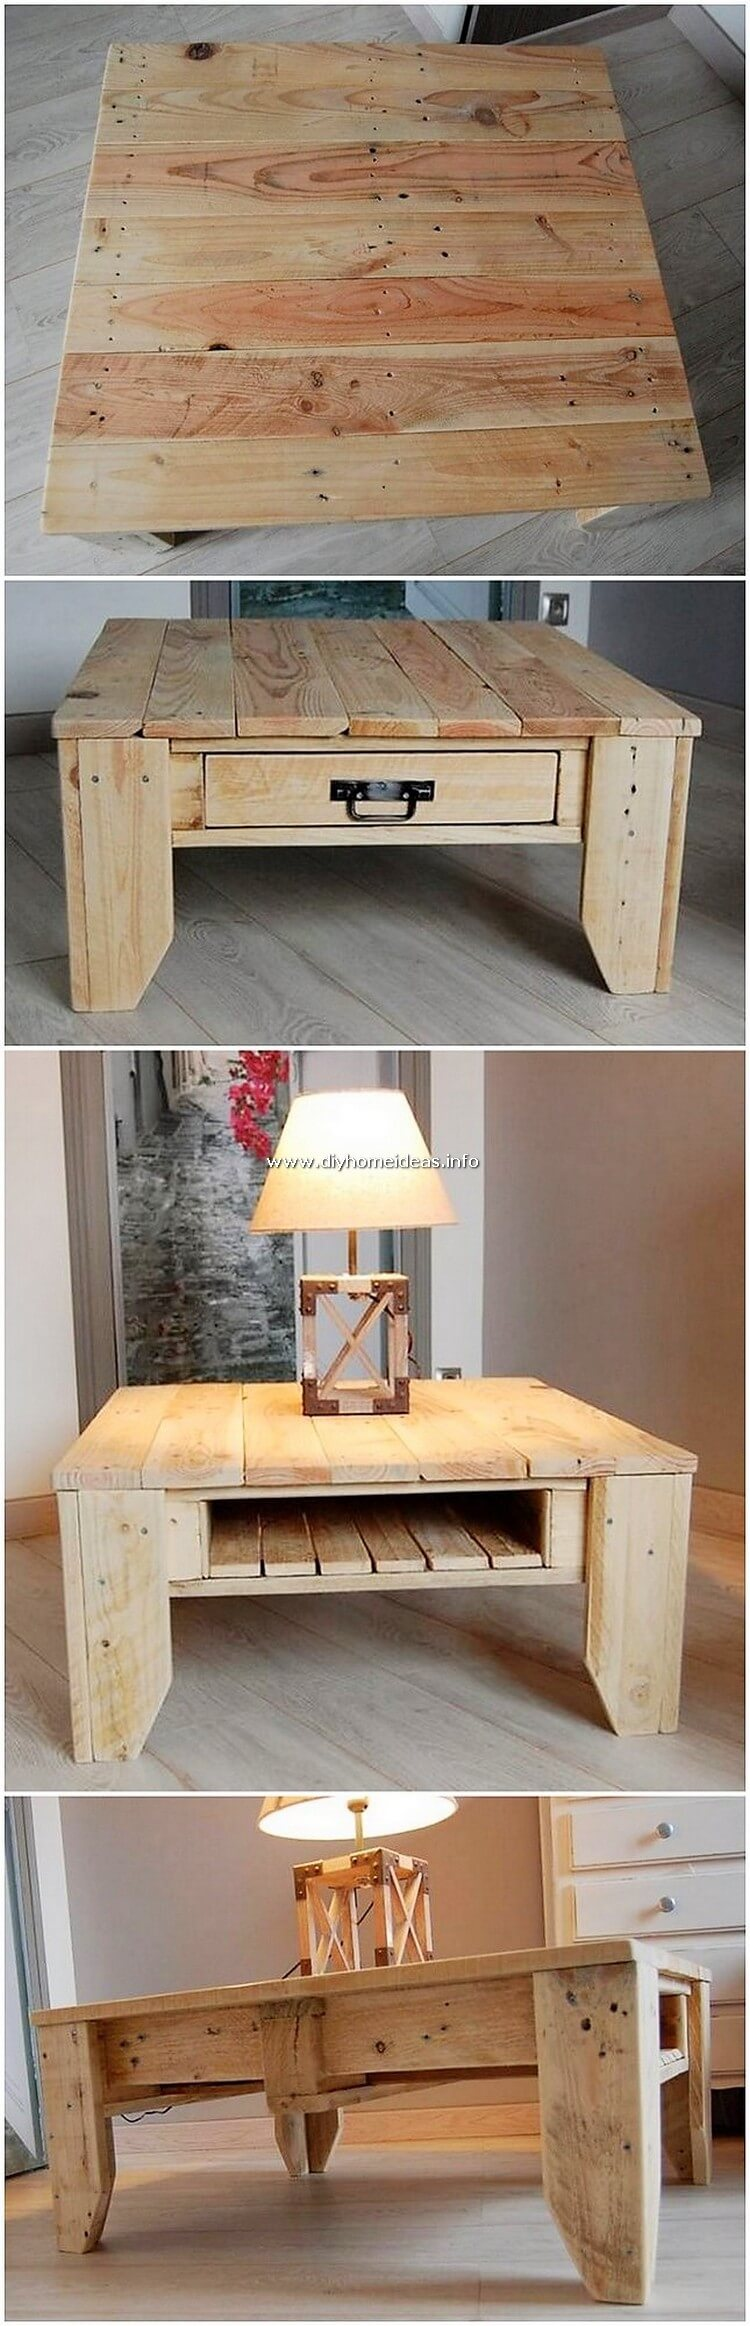 Pallet Lamp Stand or Table